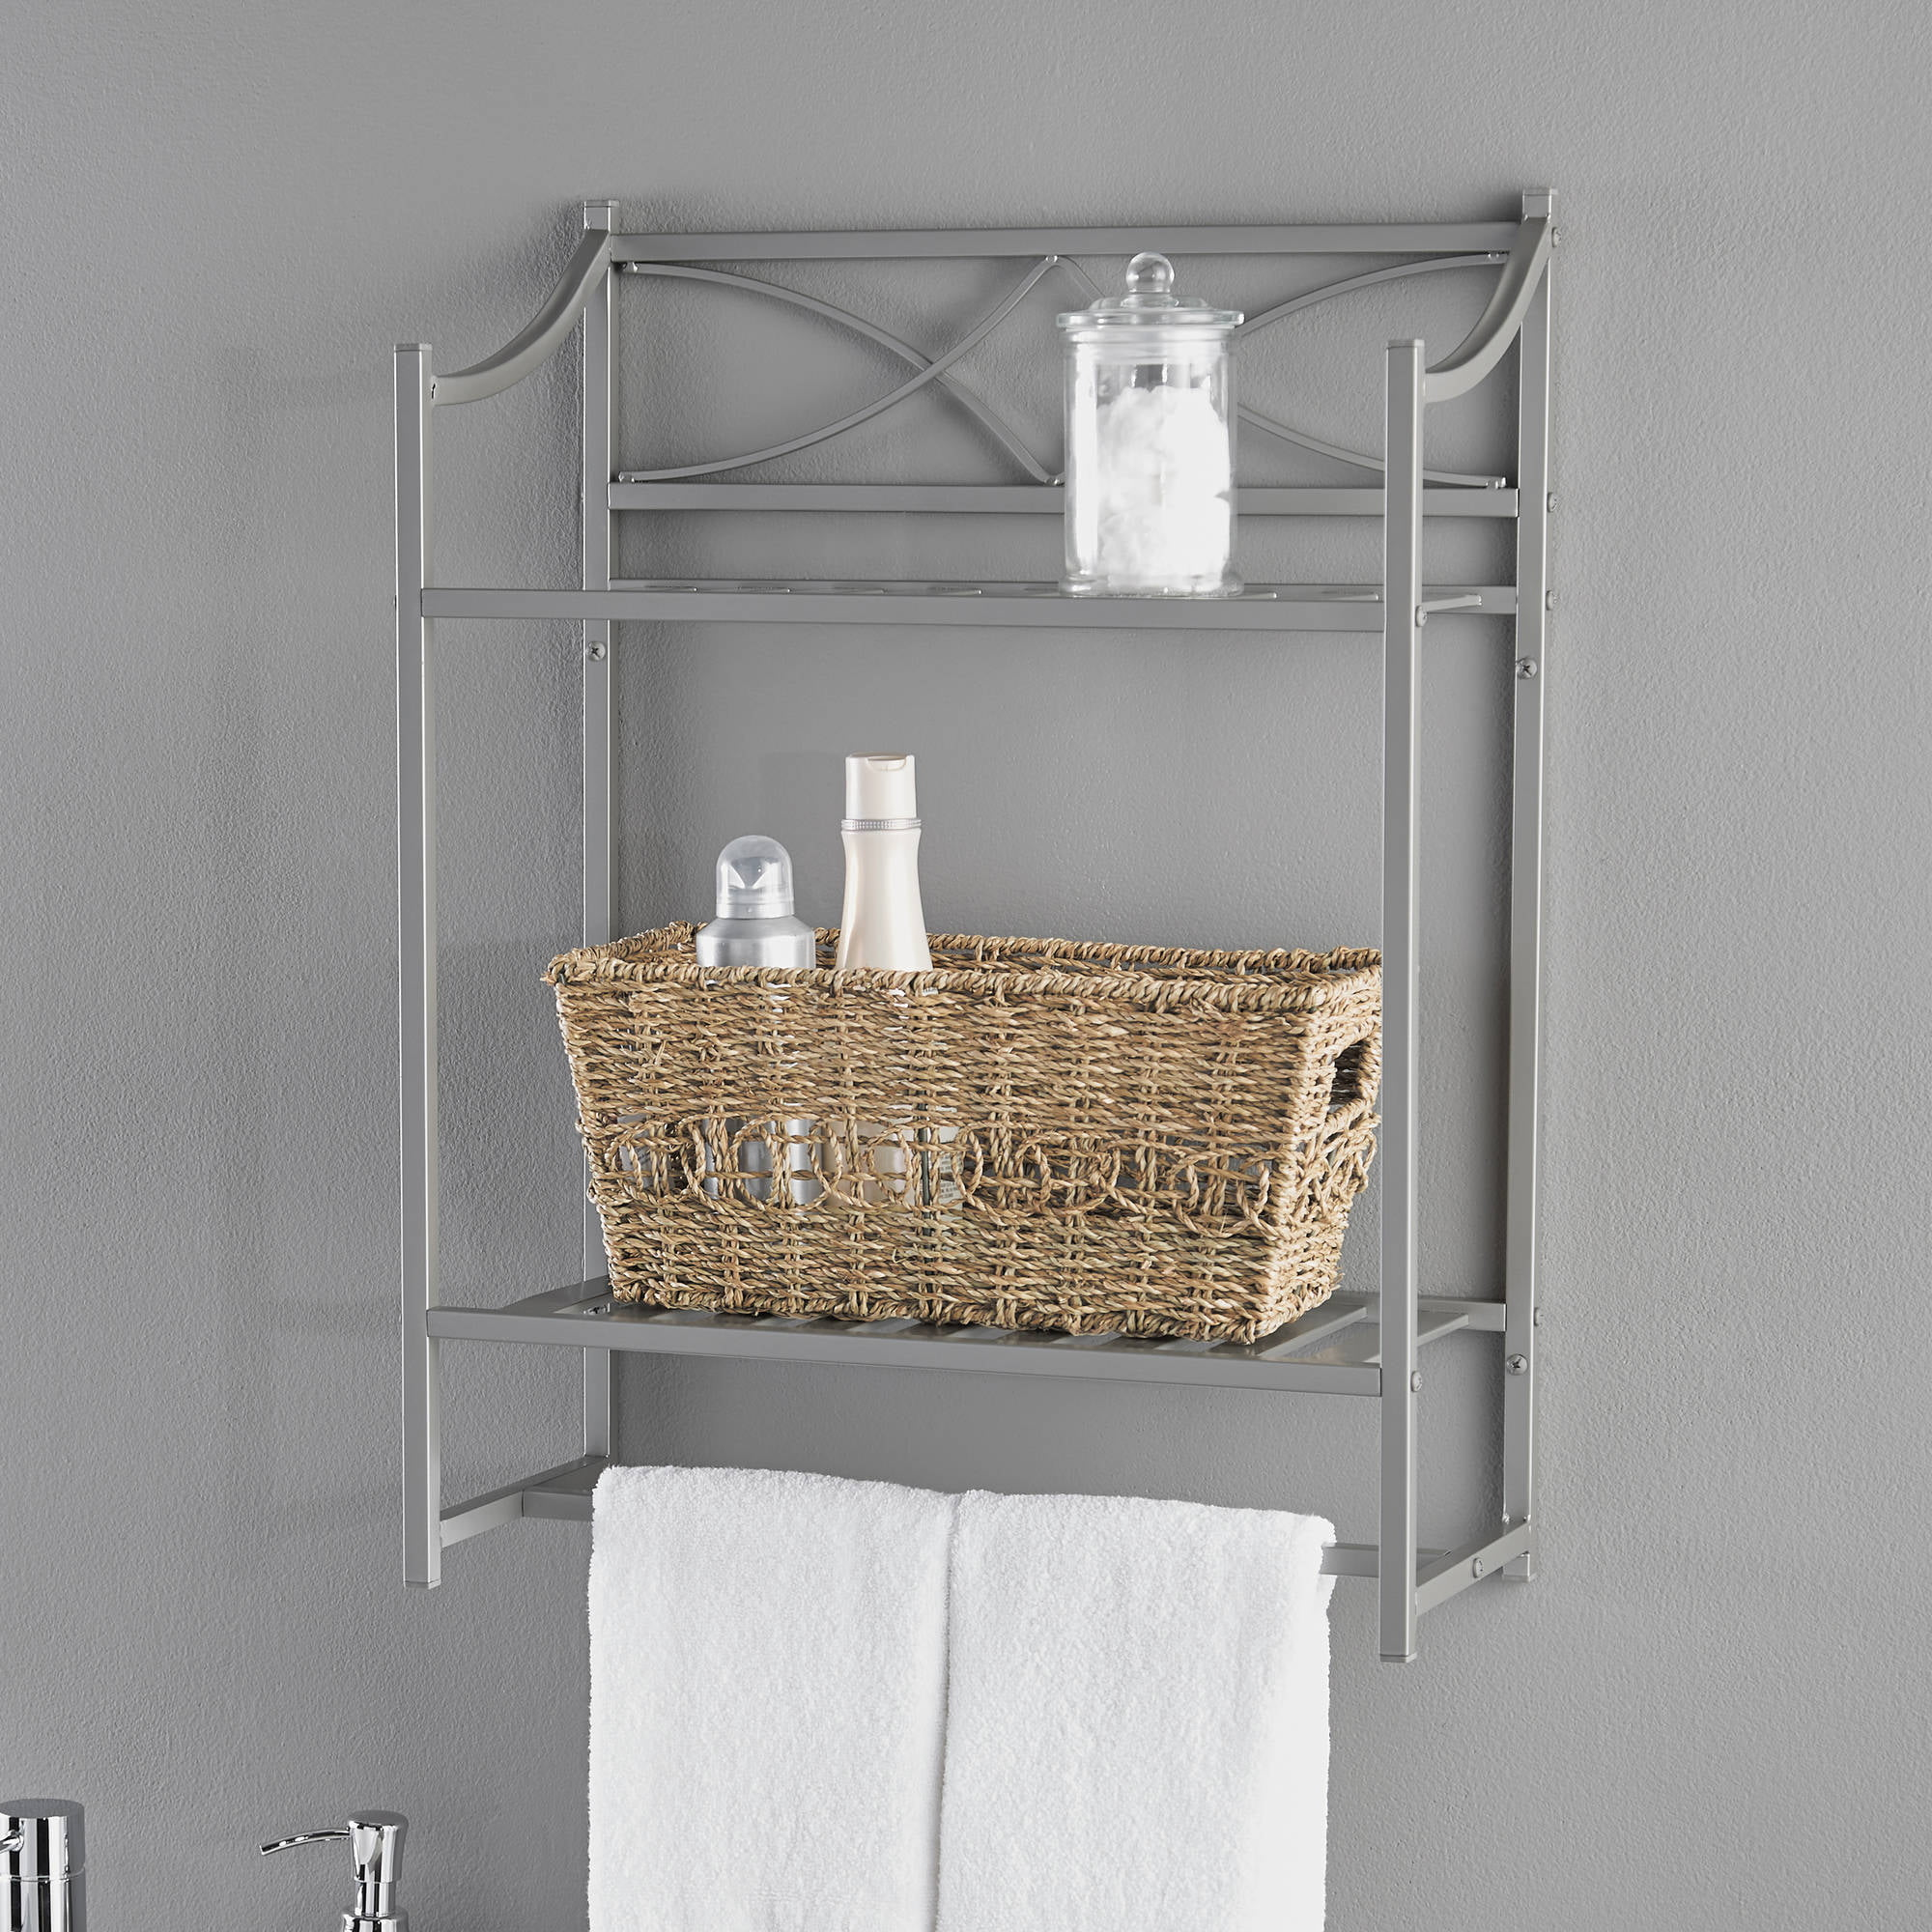 Bathroom wall shelf - Chapter Lexington Park Bathroom Wall Shelf Satin Nickel